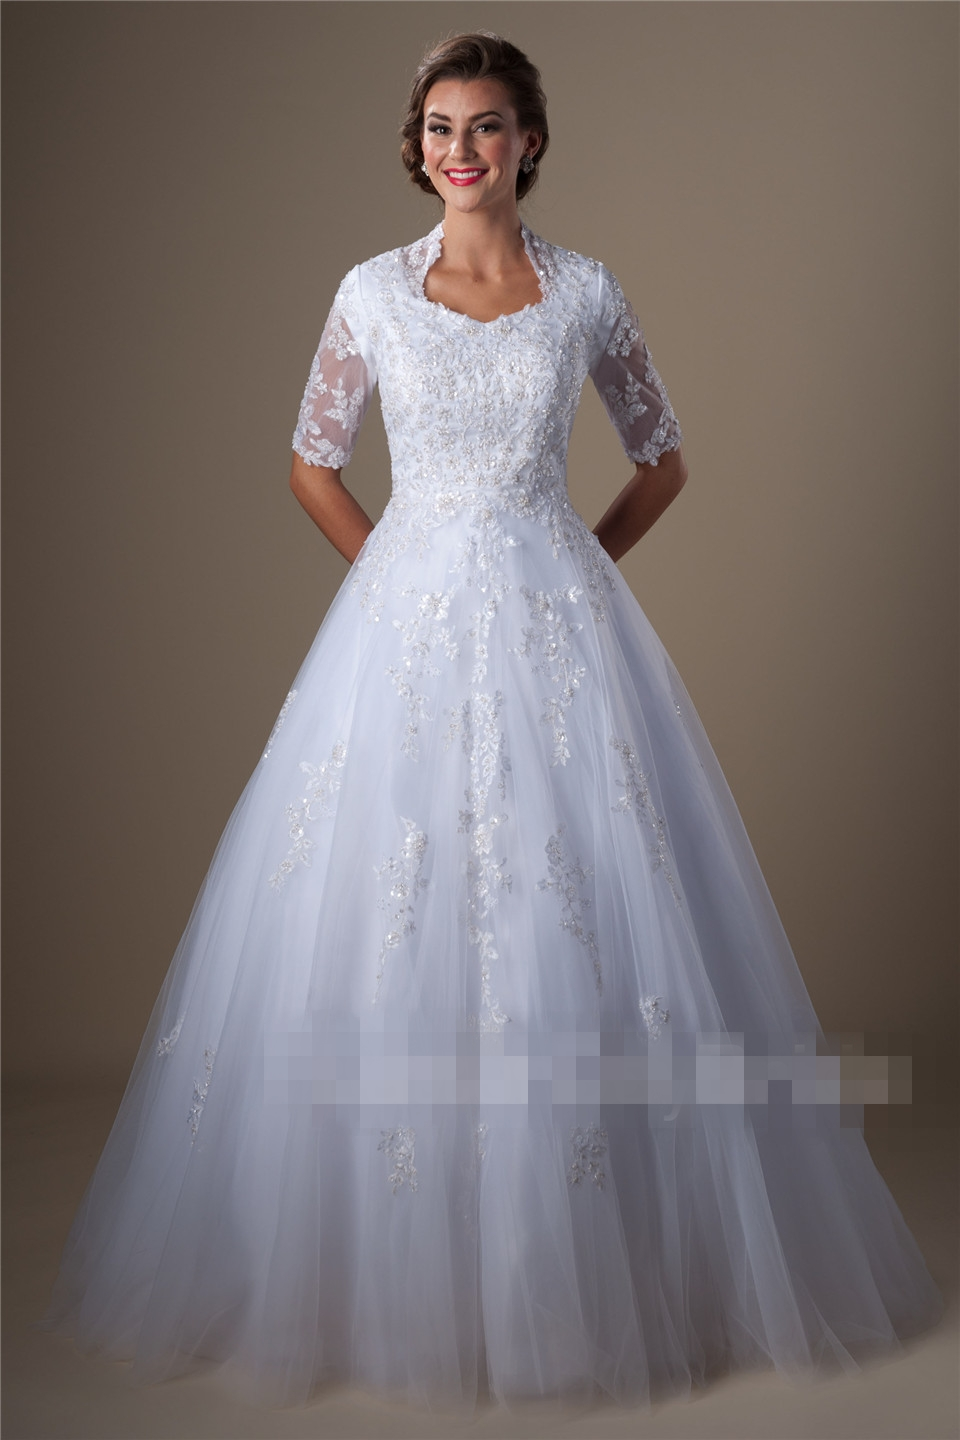 White dress for church - White Ball Gown Modest Wedding Dresses With Half Sleeves Beaded Lace Dress Princess Church Bridal Gowns Formal Custom Made